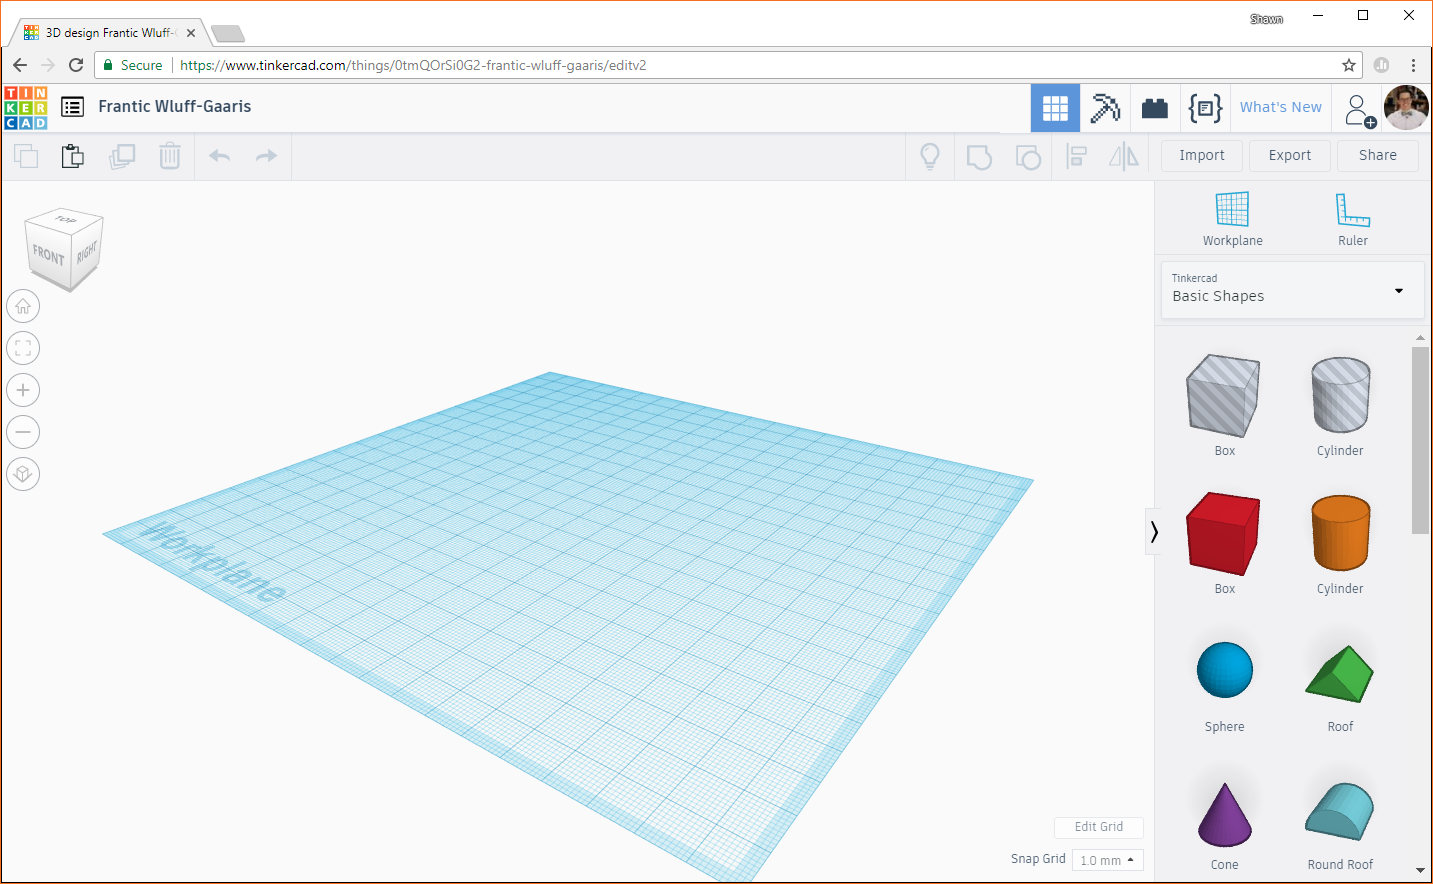 Getting Started with 3D Printing Using Tinkercad - learn sparkfun com